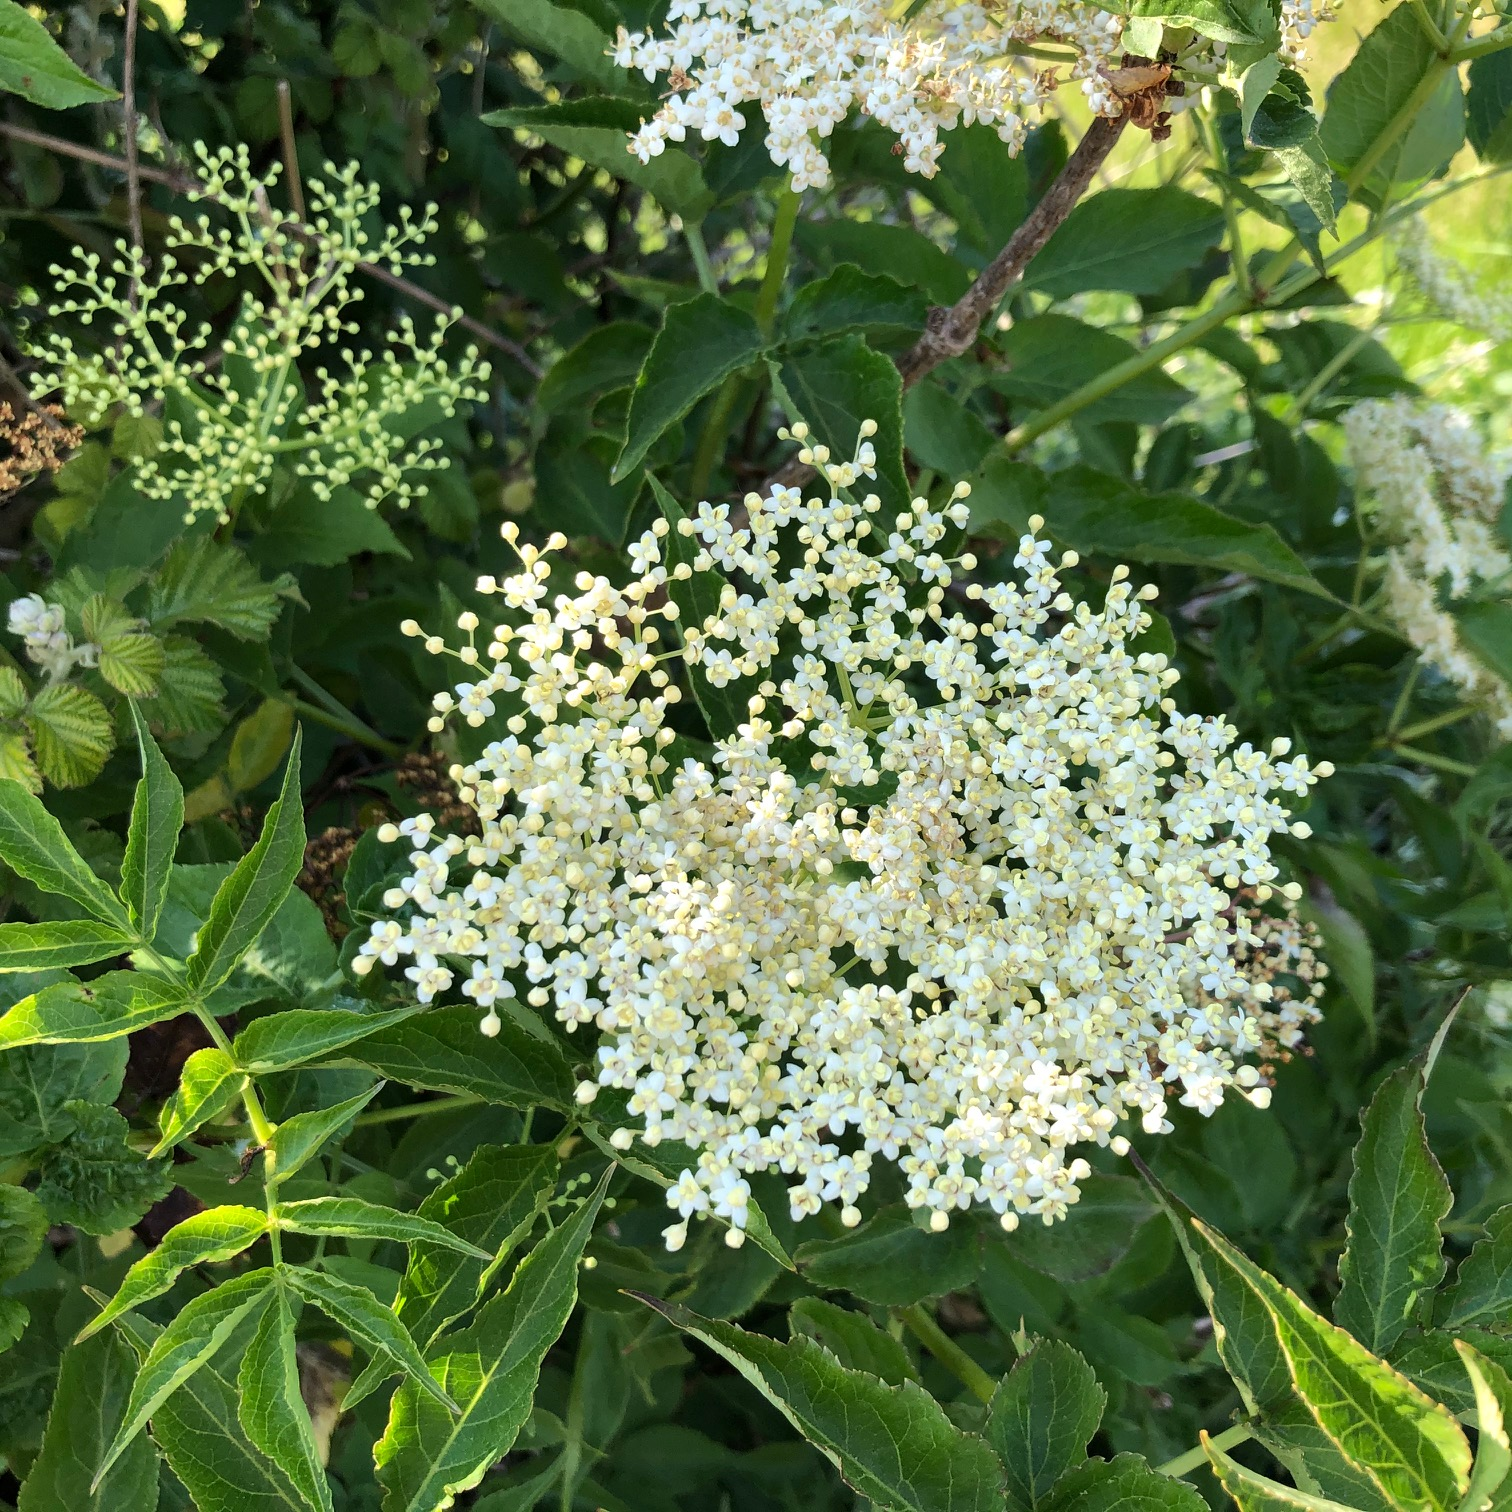 Foraging for Elderflowers to Make Cordial 3